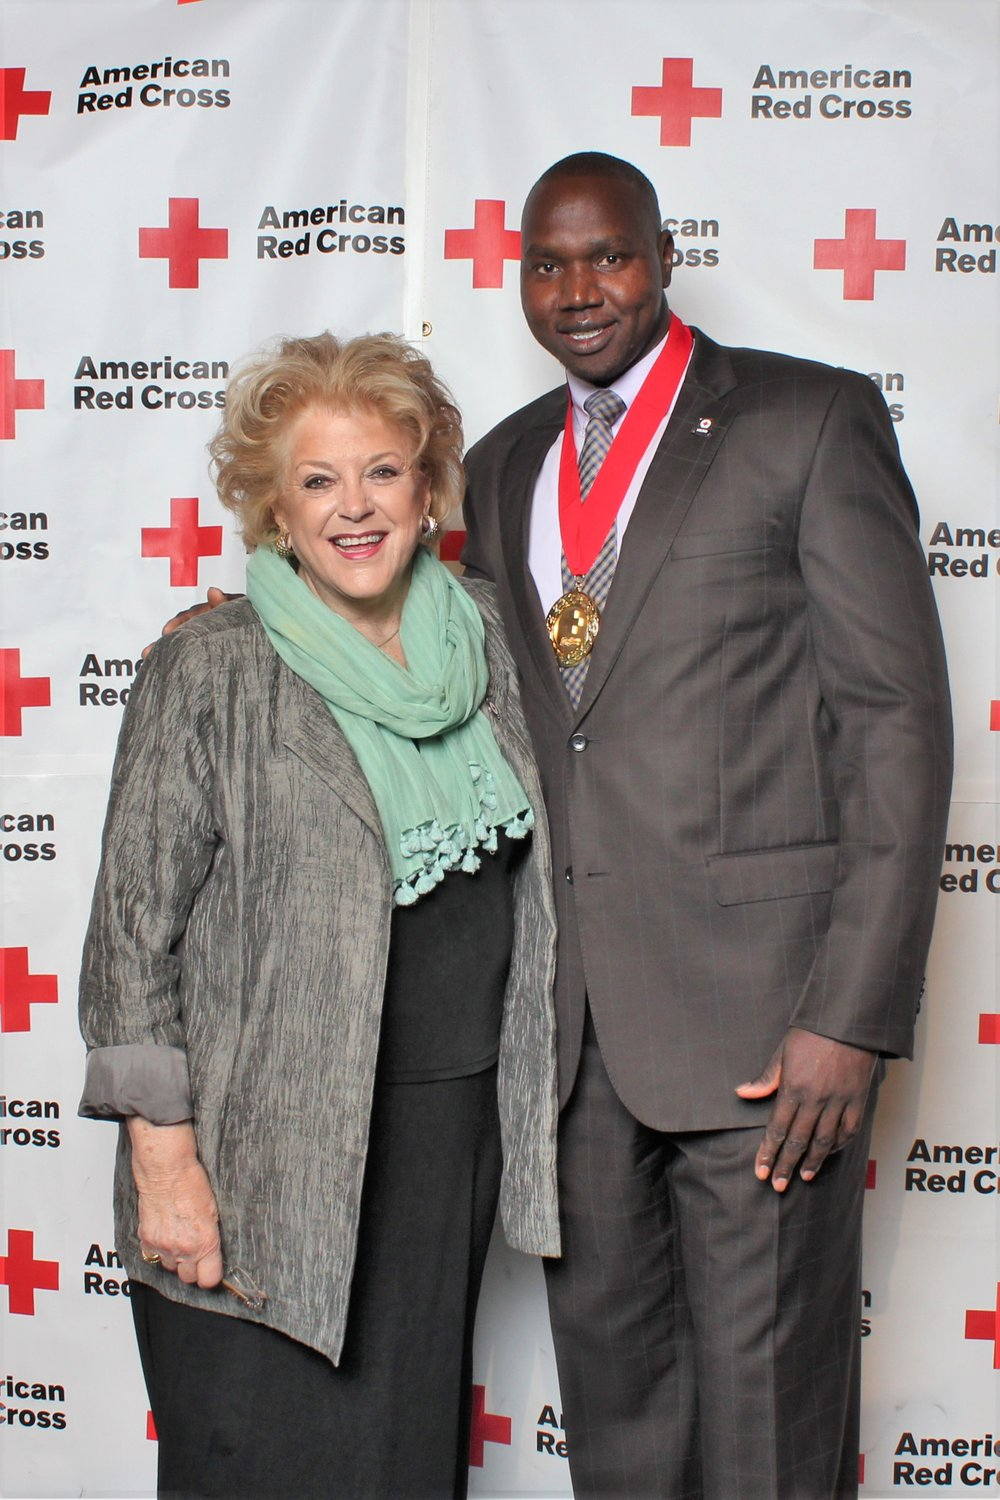 With the Mayor of Las Vegas Carolyn Goodman. Honored to receive  Community Impact Award, 2016 Everyday Heroes, American Red Cross 10.6.16